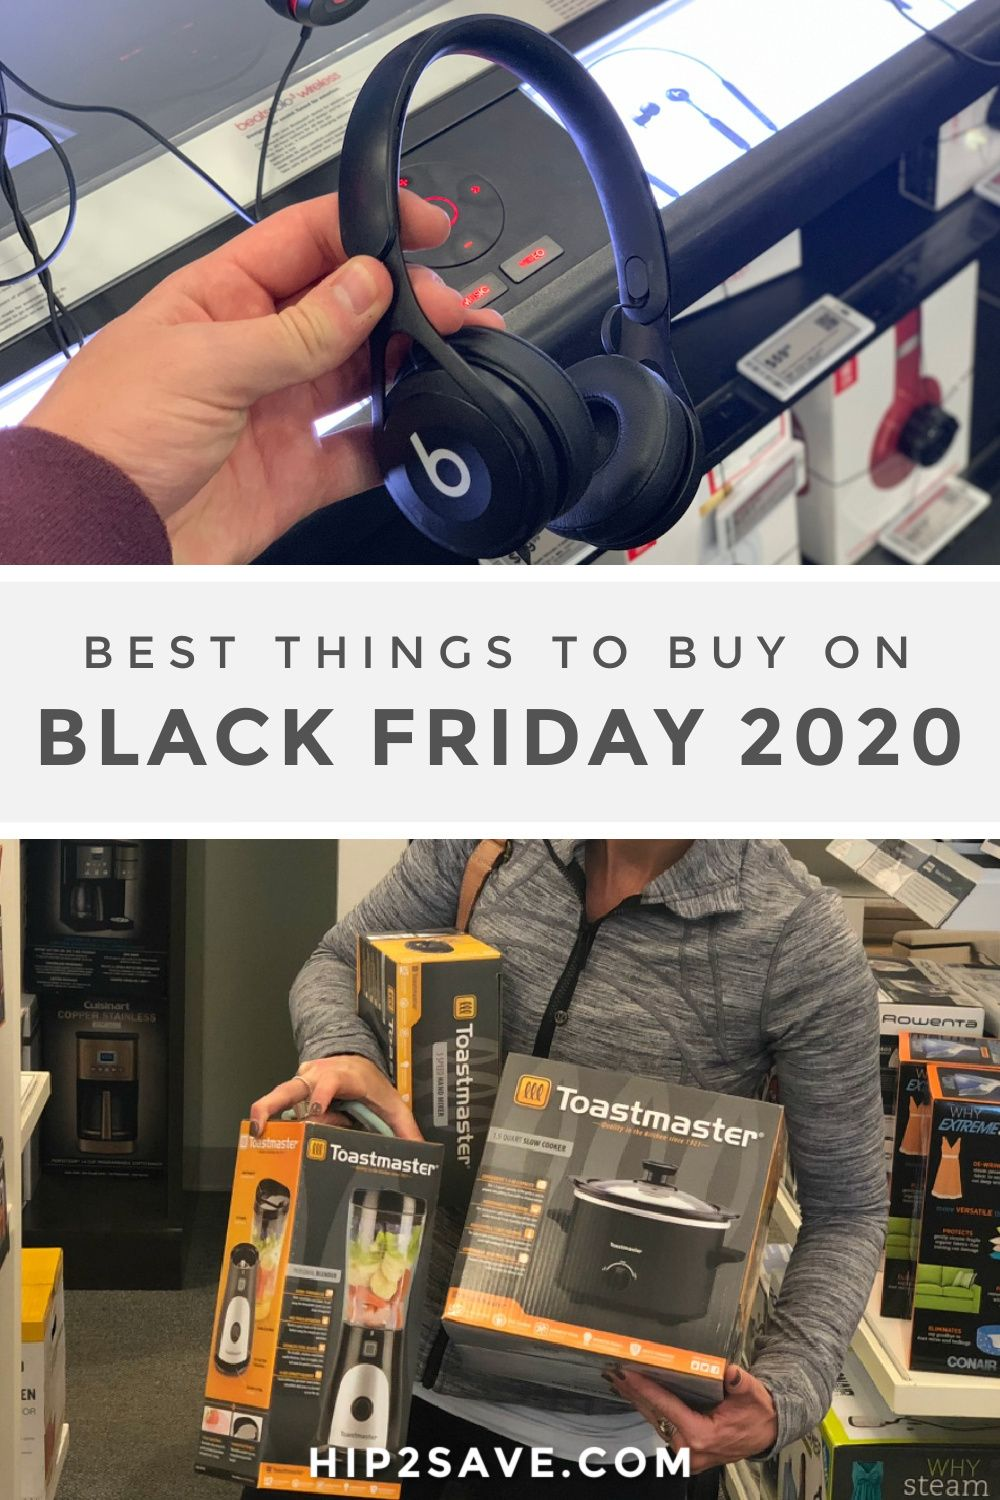 If You Re Wondering What Are The 10 Best Things To Buy This Black Friday Hip2save Has The Deals On Product Sales In 2020 Cool Things To Buy Kids Camera Things To Buy